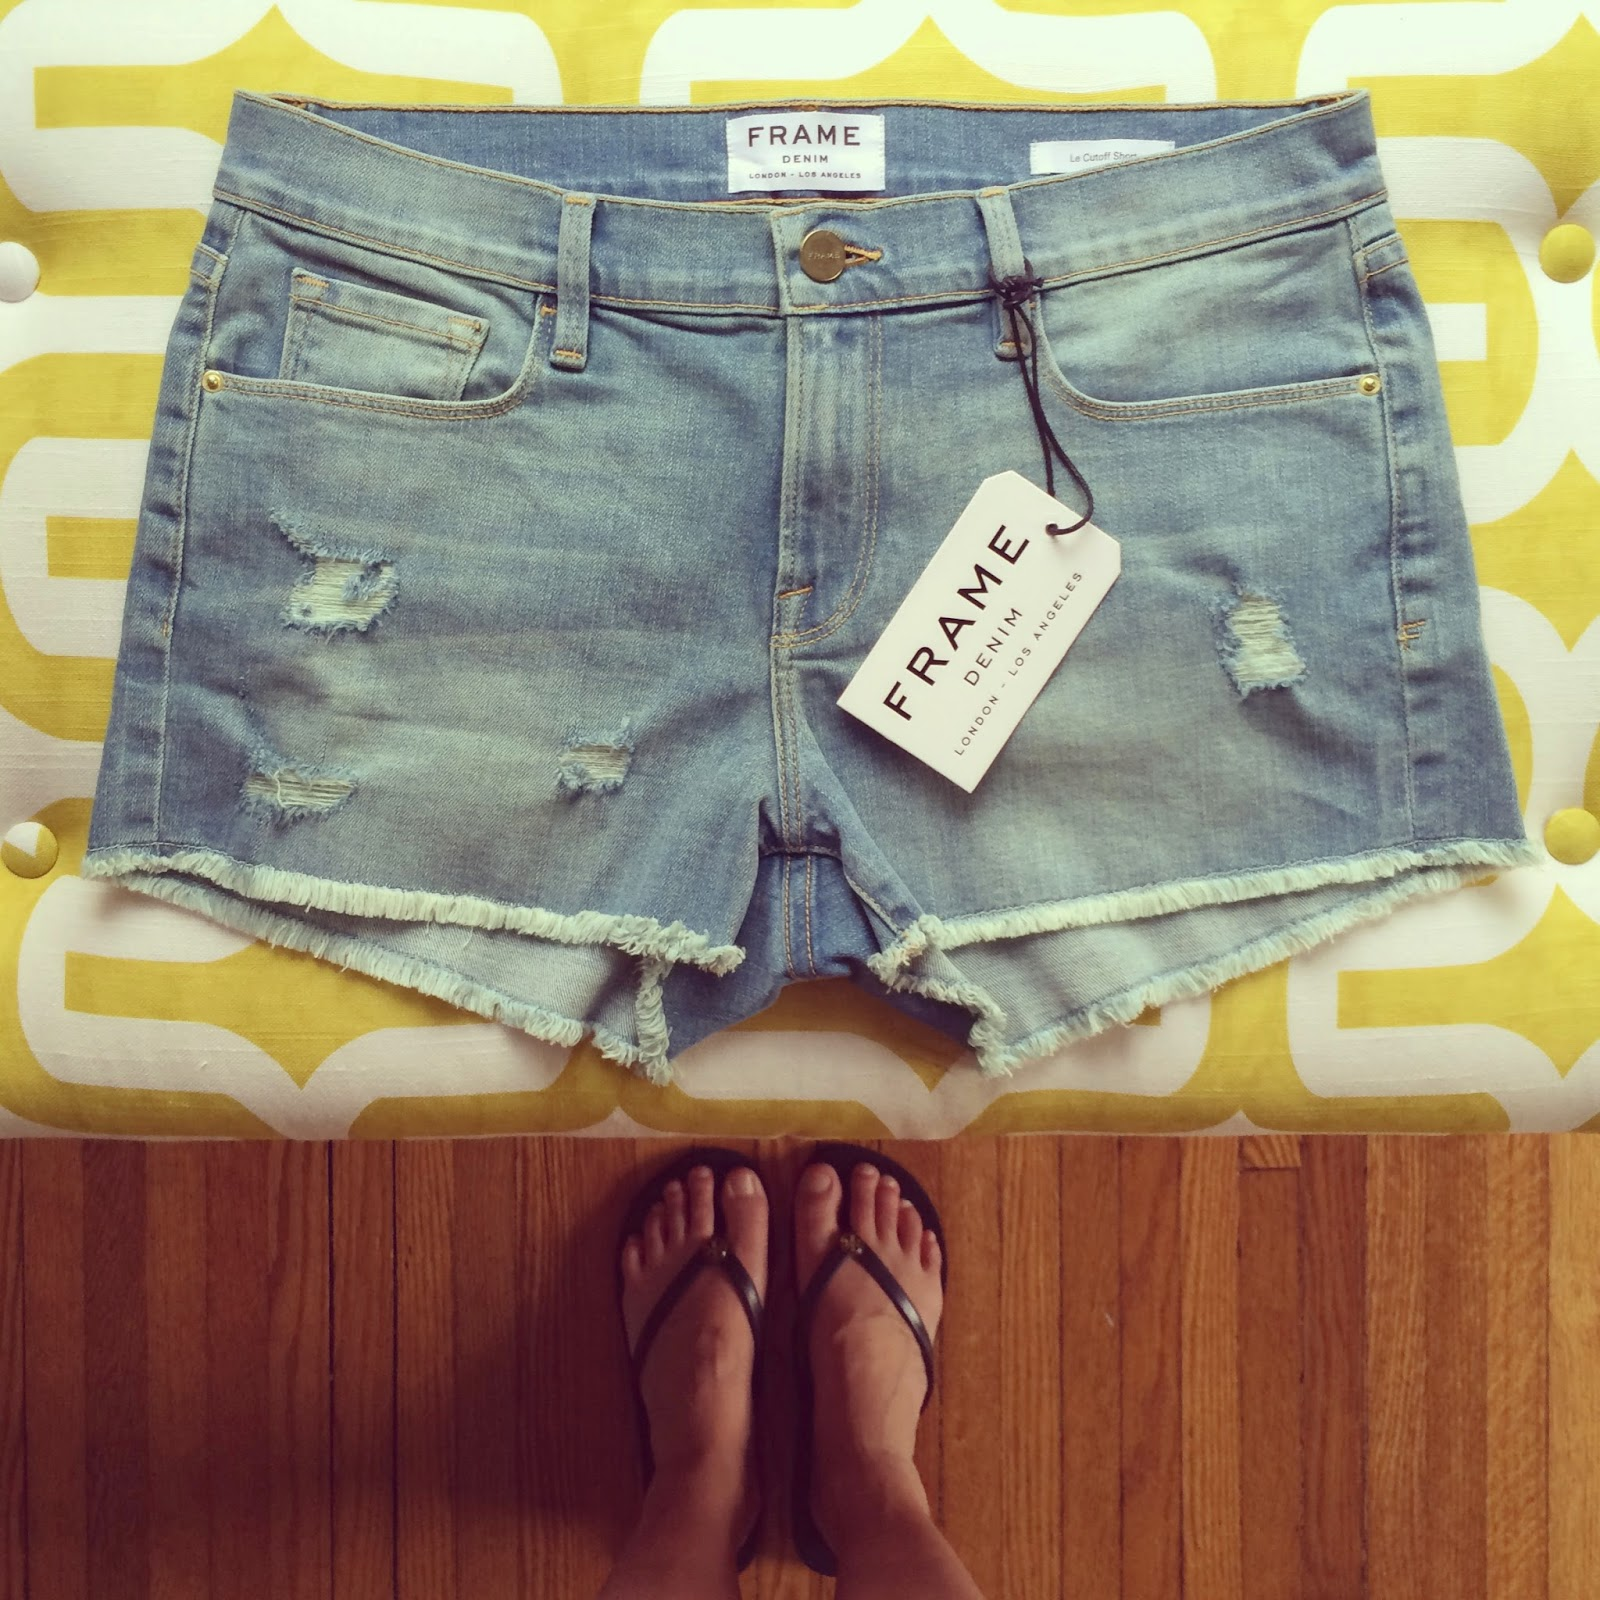 831e5f7da Tuesday Trends  Cut-Off Shorts You MUST OWN + Easter Dresses at ...